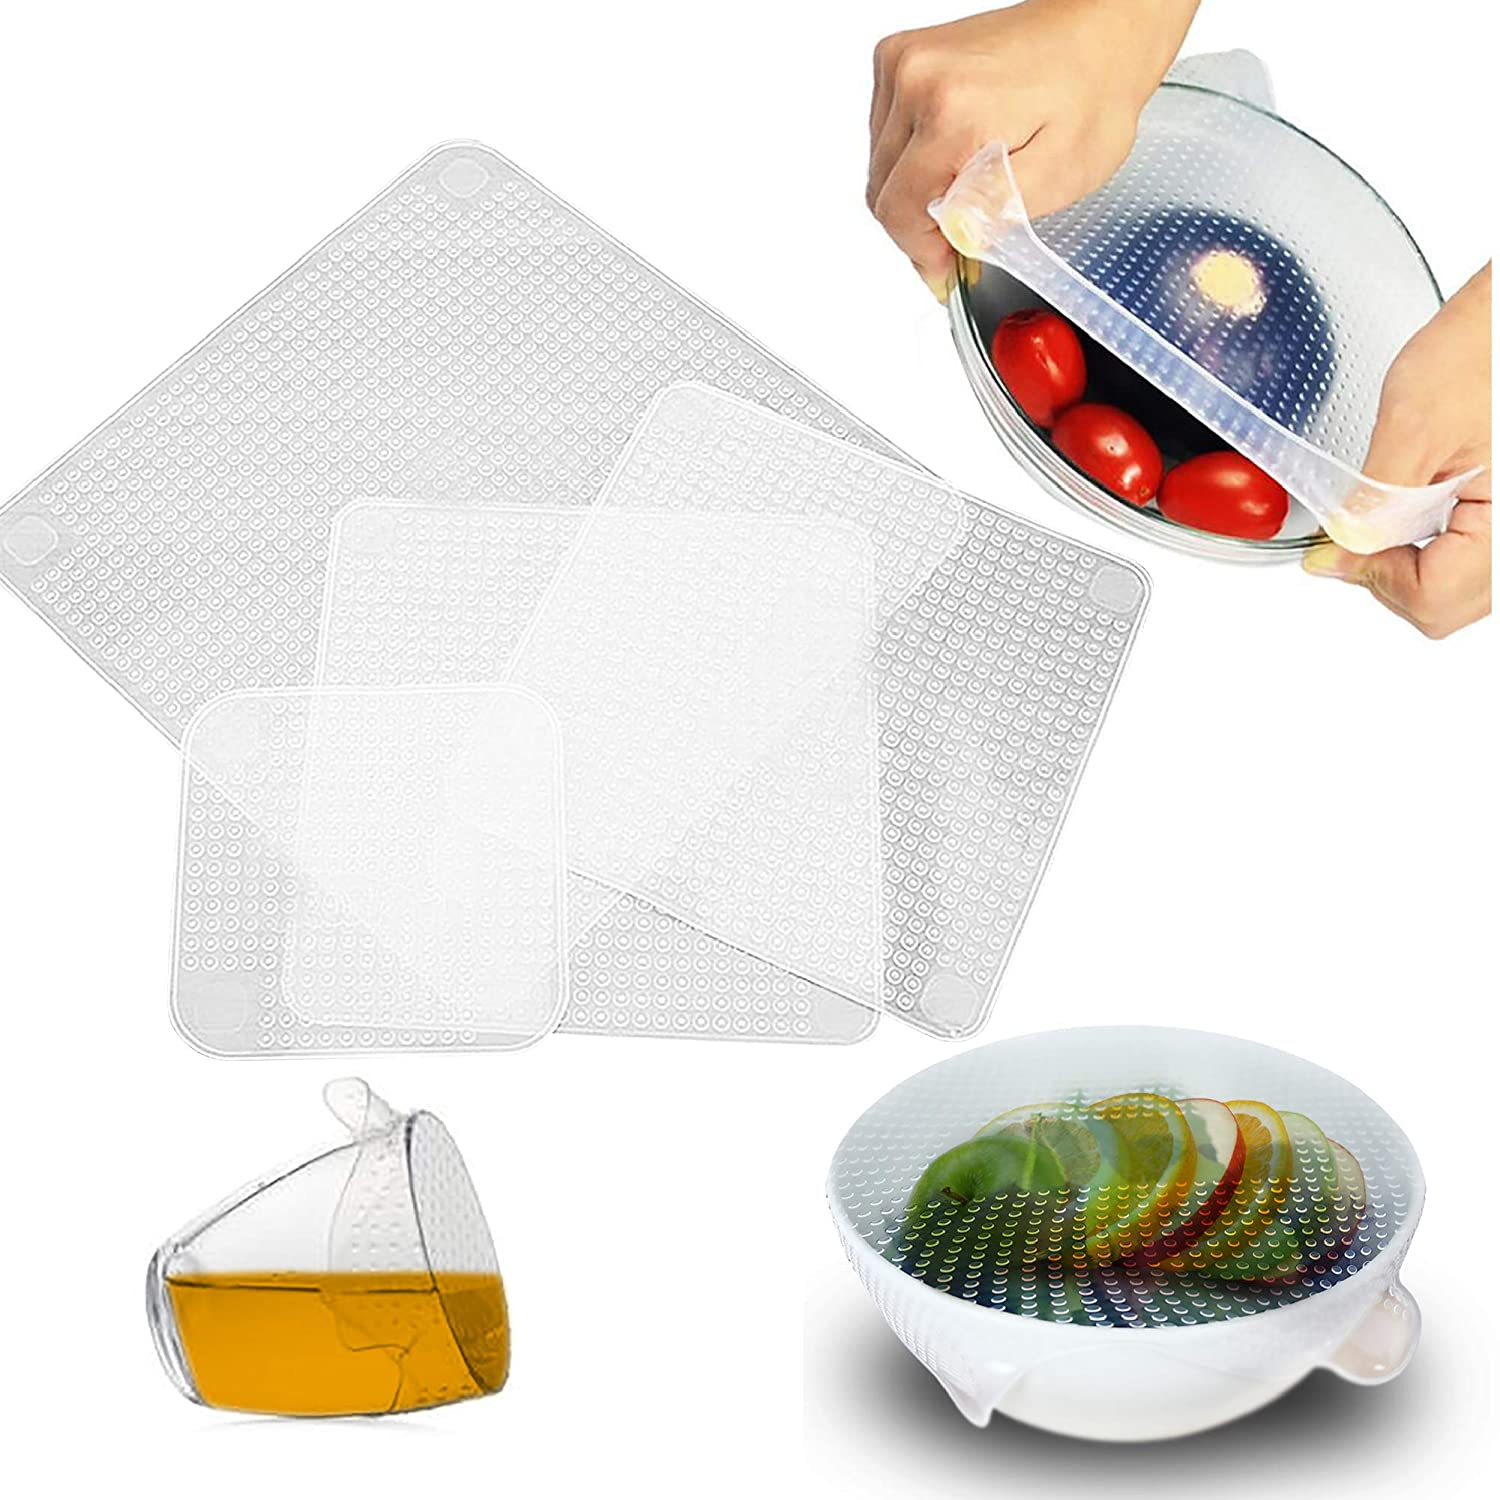 OVA Silicone Food Wrap | Replacement Cover for Tupperware, Bowls, Dishes and Plastic Container | Reusable, Eco-Friendly Storage for Fruit, Fresh Produce | Freezer and Microwave Safe Lids